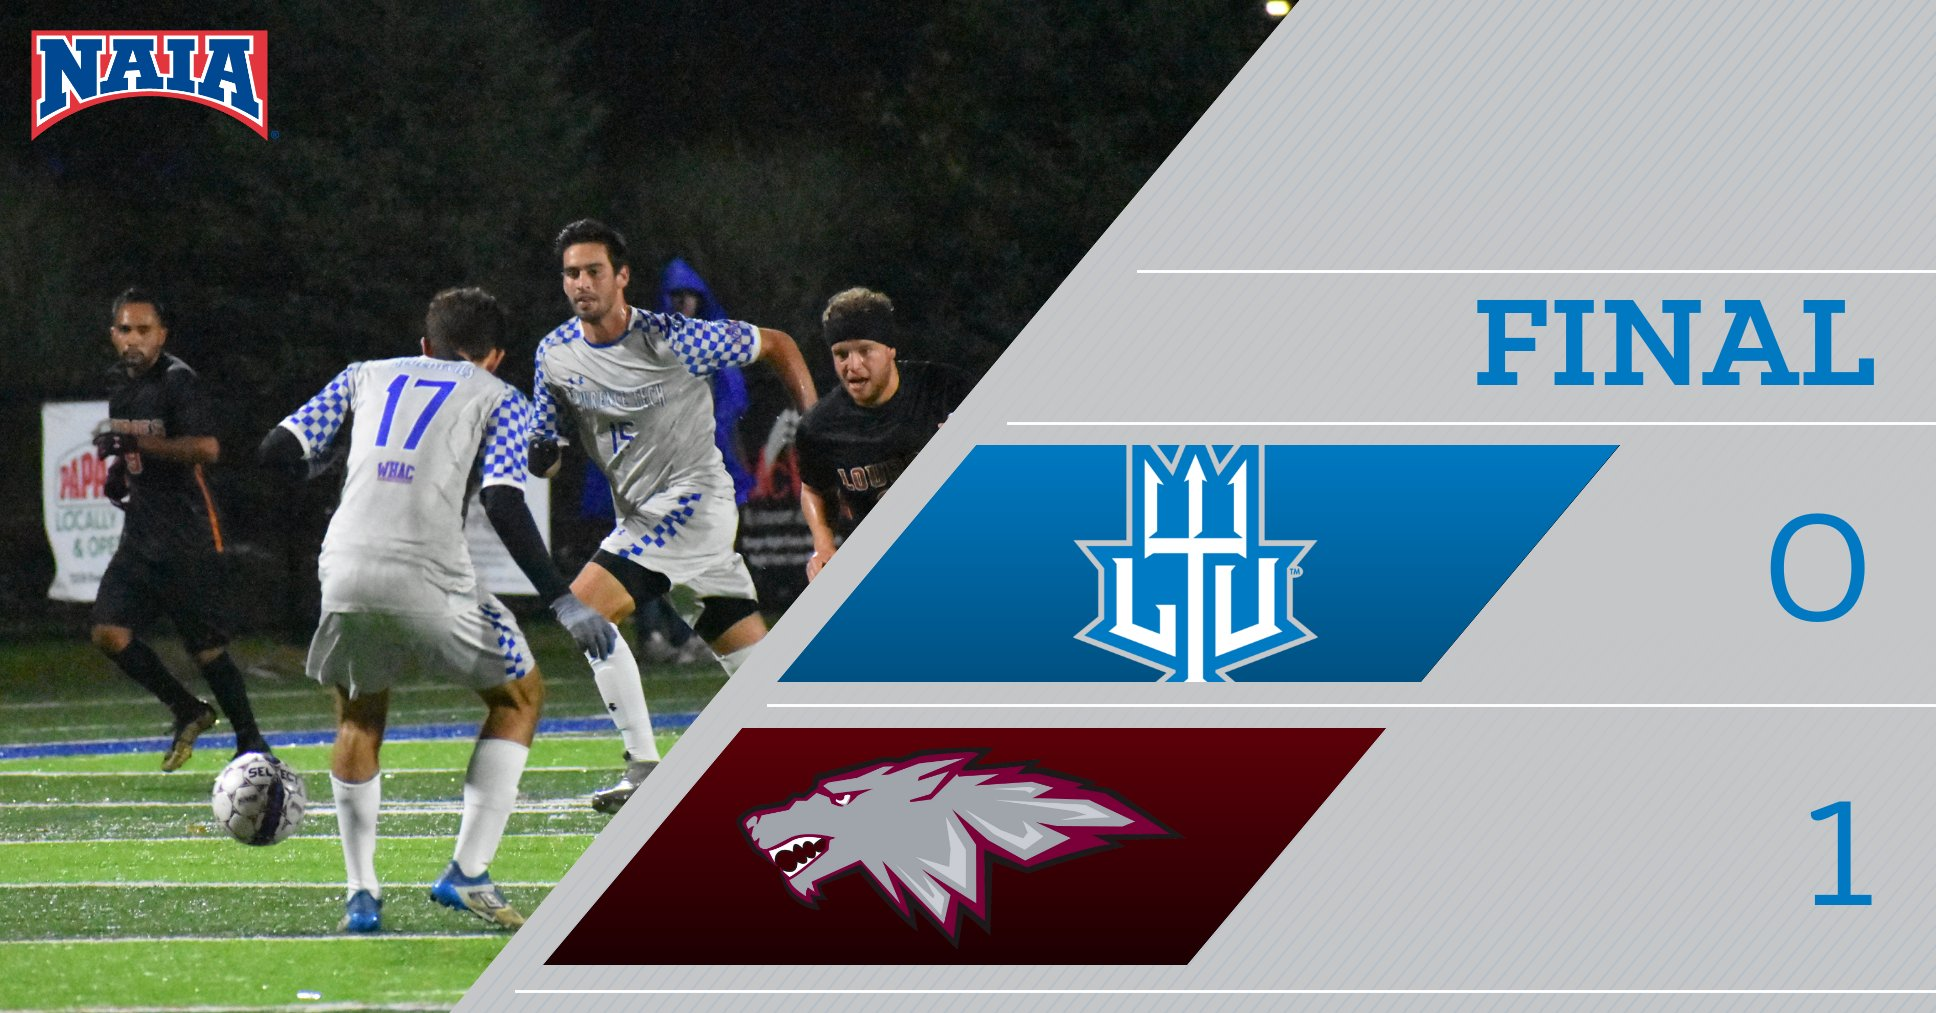 Early Goal by No. 7 Cardinal Stritch was the Difference as the Blue Devils fall by a Score of 1-0.